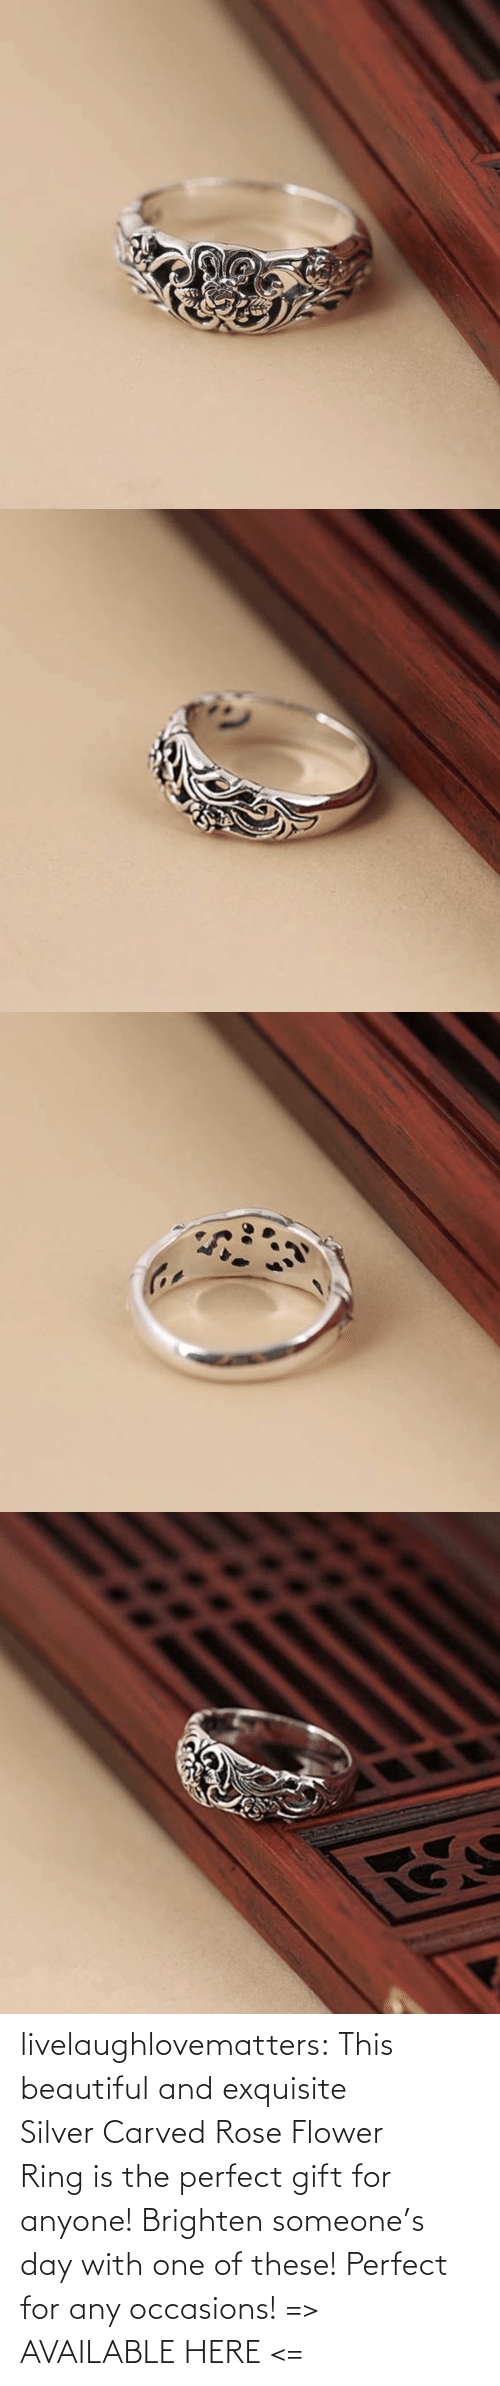 Beautiful, Tumblr, and Blog: livelaughlovematters: This beautiful and exquisite Silver Carved Rose Flower Ring is the perfect gift for anyone! Brighten someone's day with one of these! Perfect for any occasions!  => AVAILABLE HERE <=